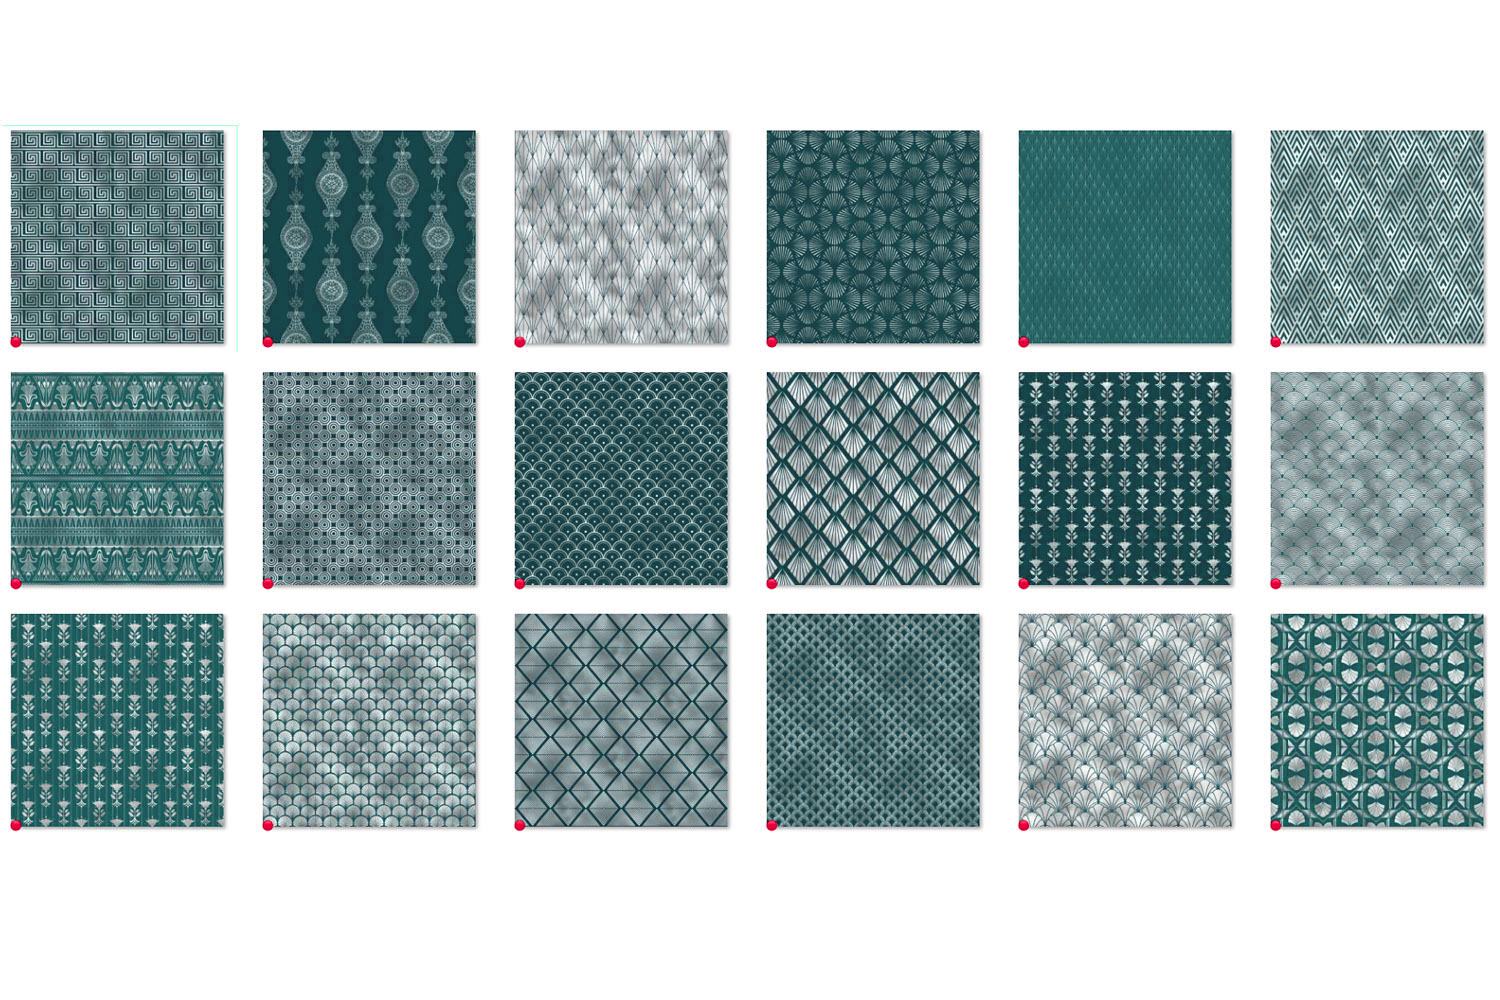 Teal and Silver Art Deco Digital Paper example image 4